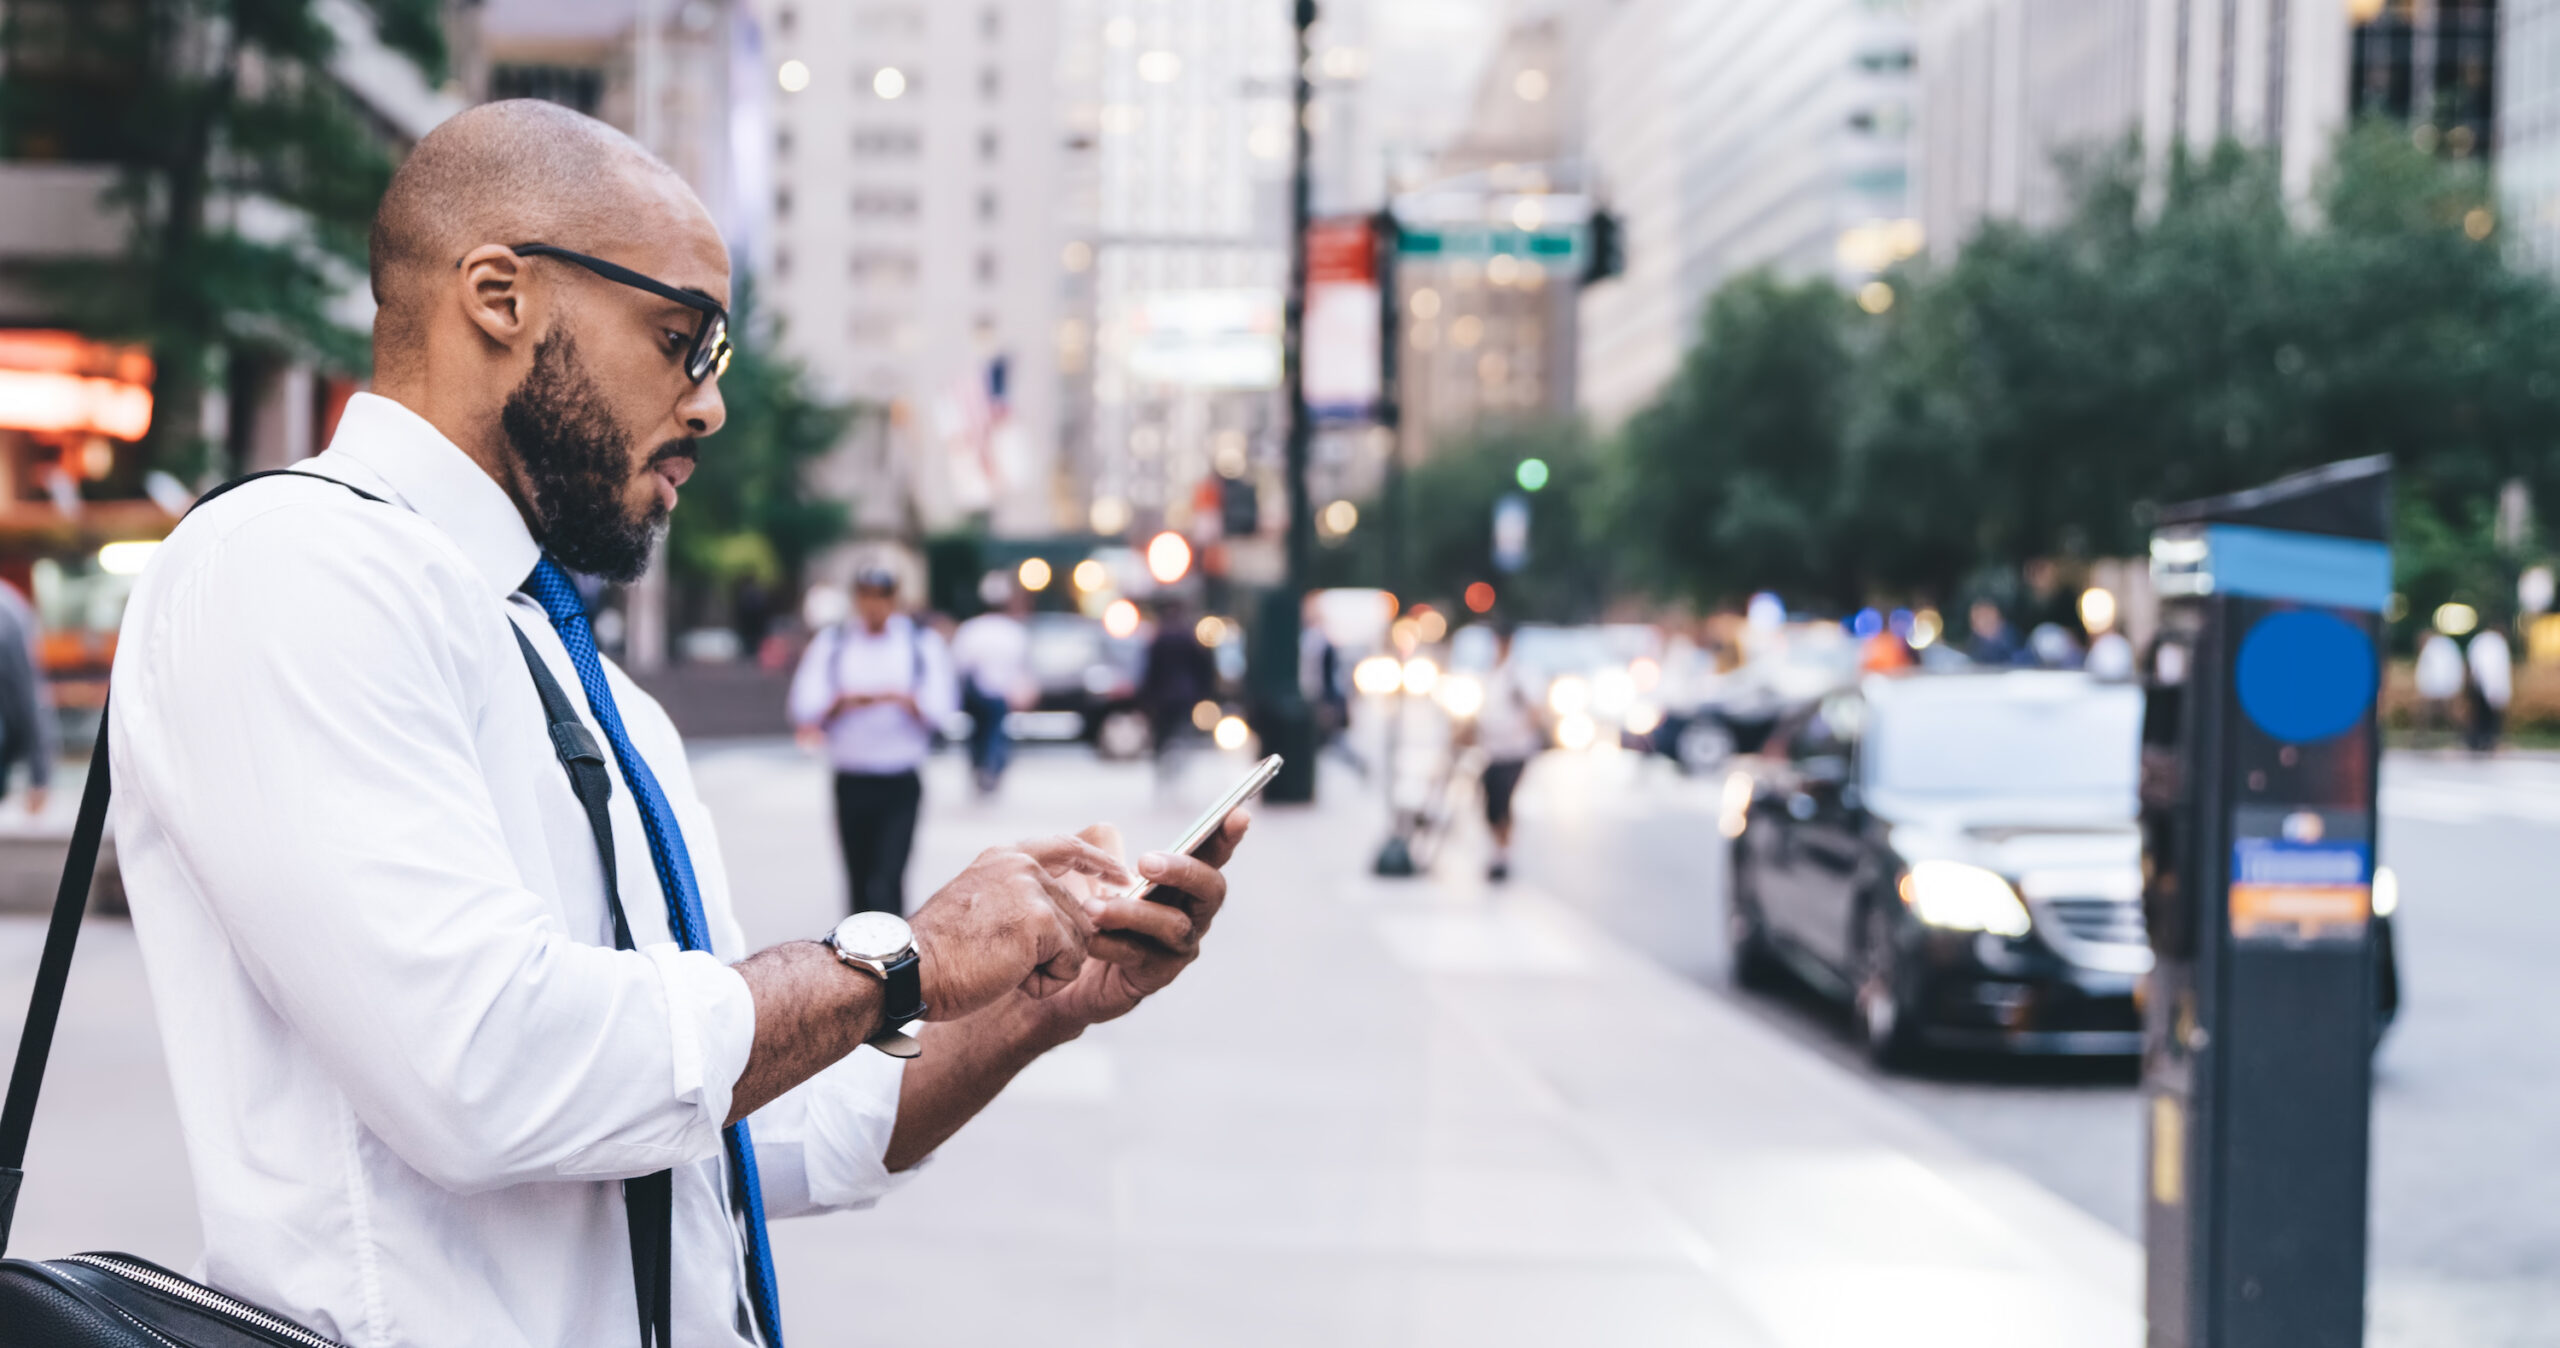 Side view of African American bald bearded office employee with bag looking at smartphone screen while standing on street of megapolis